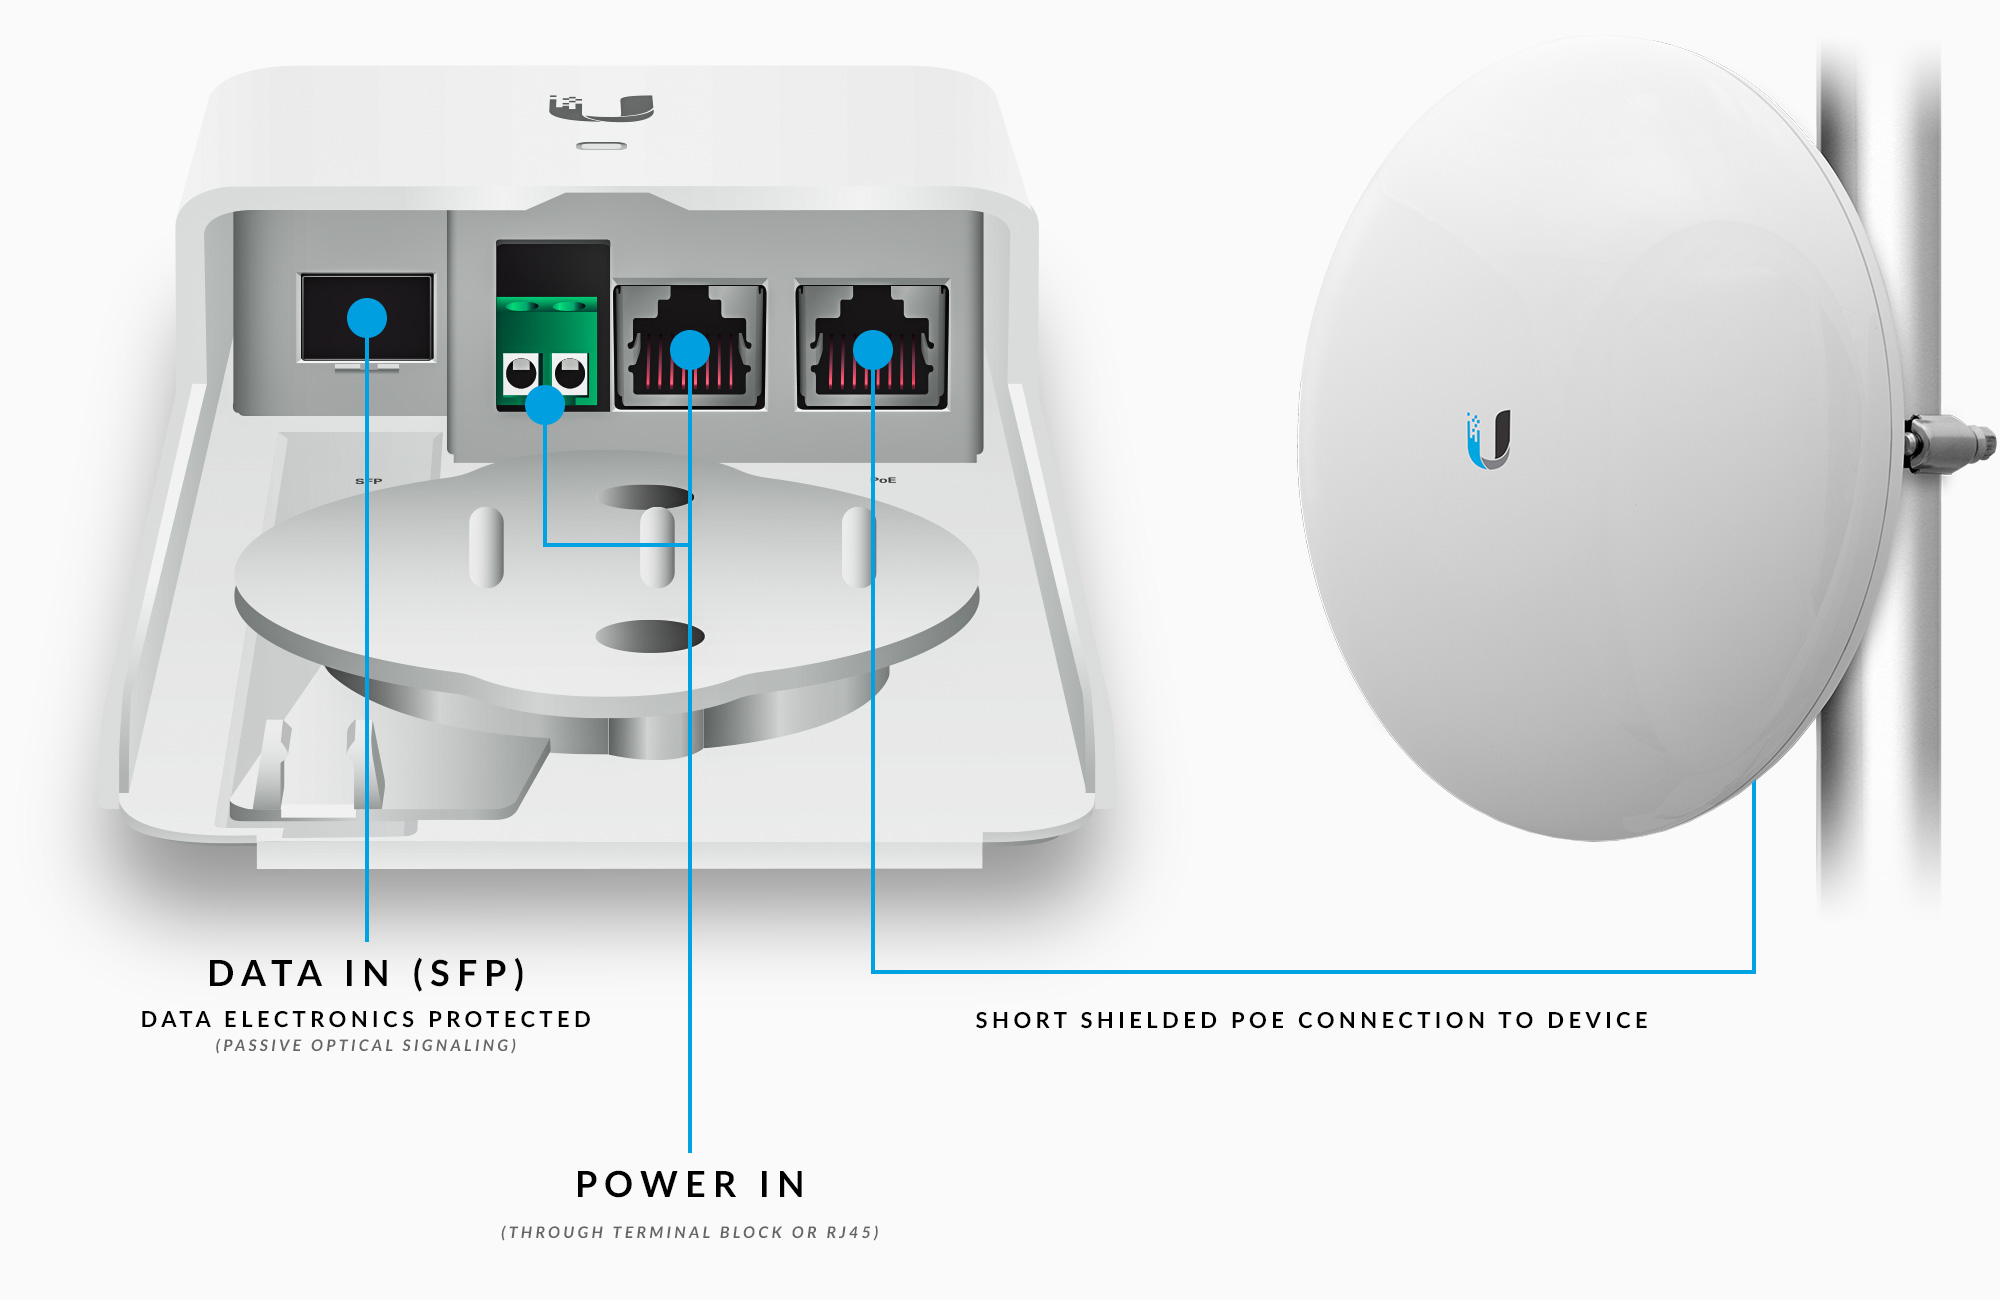 Ubiquiti Networks Fiber Poe Accessory Ethernet Wall Jack Wiring The Fiberpoe Allows Separate Power From Standard Cables Or Terminal Block Cable Support There Are Three Ways To Configure